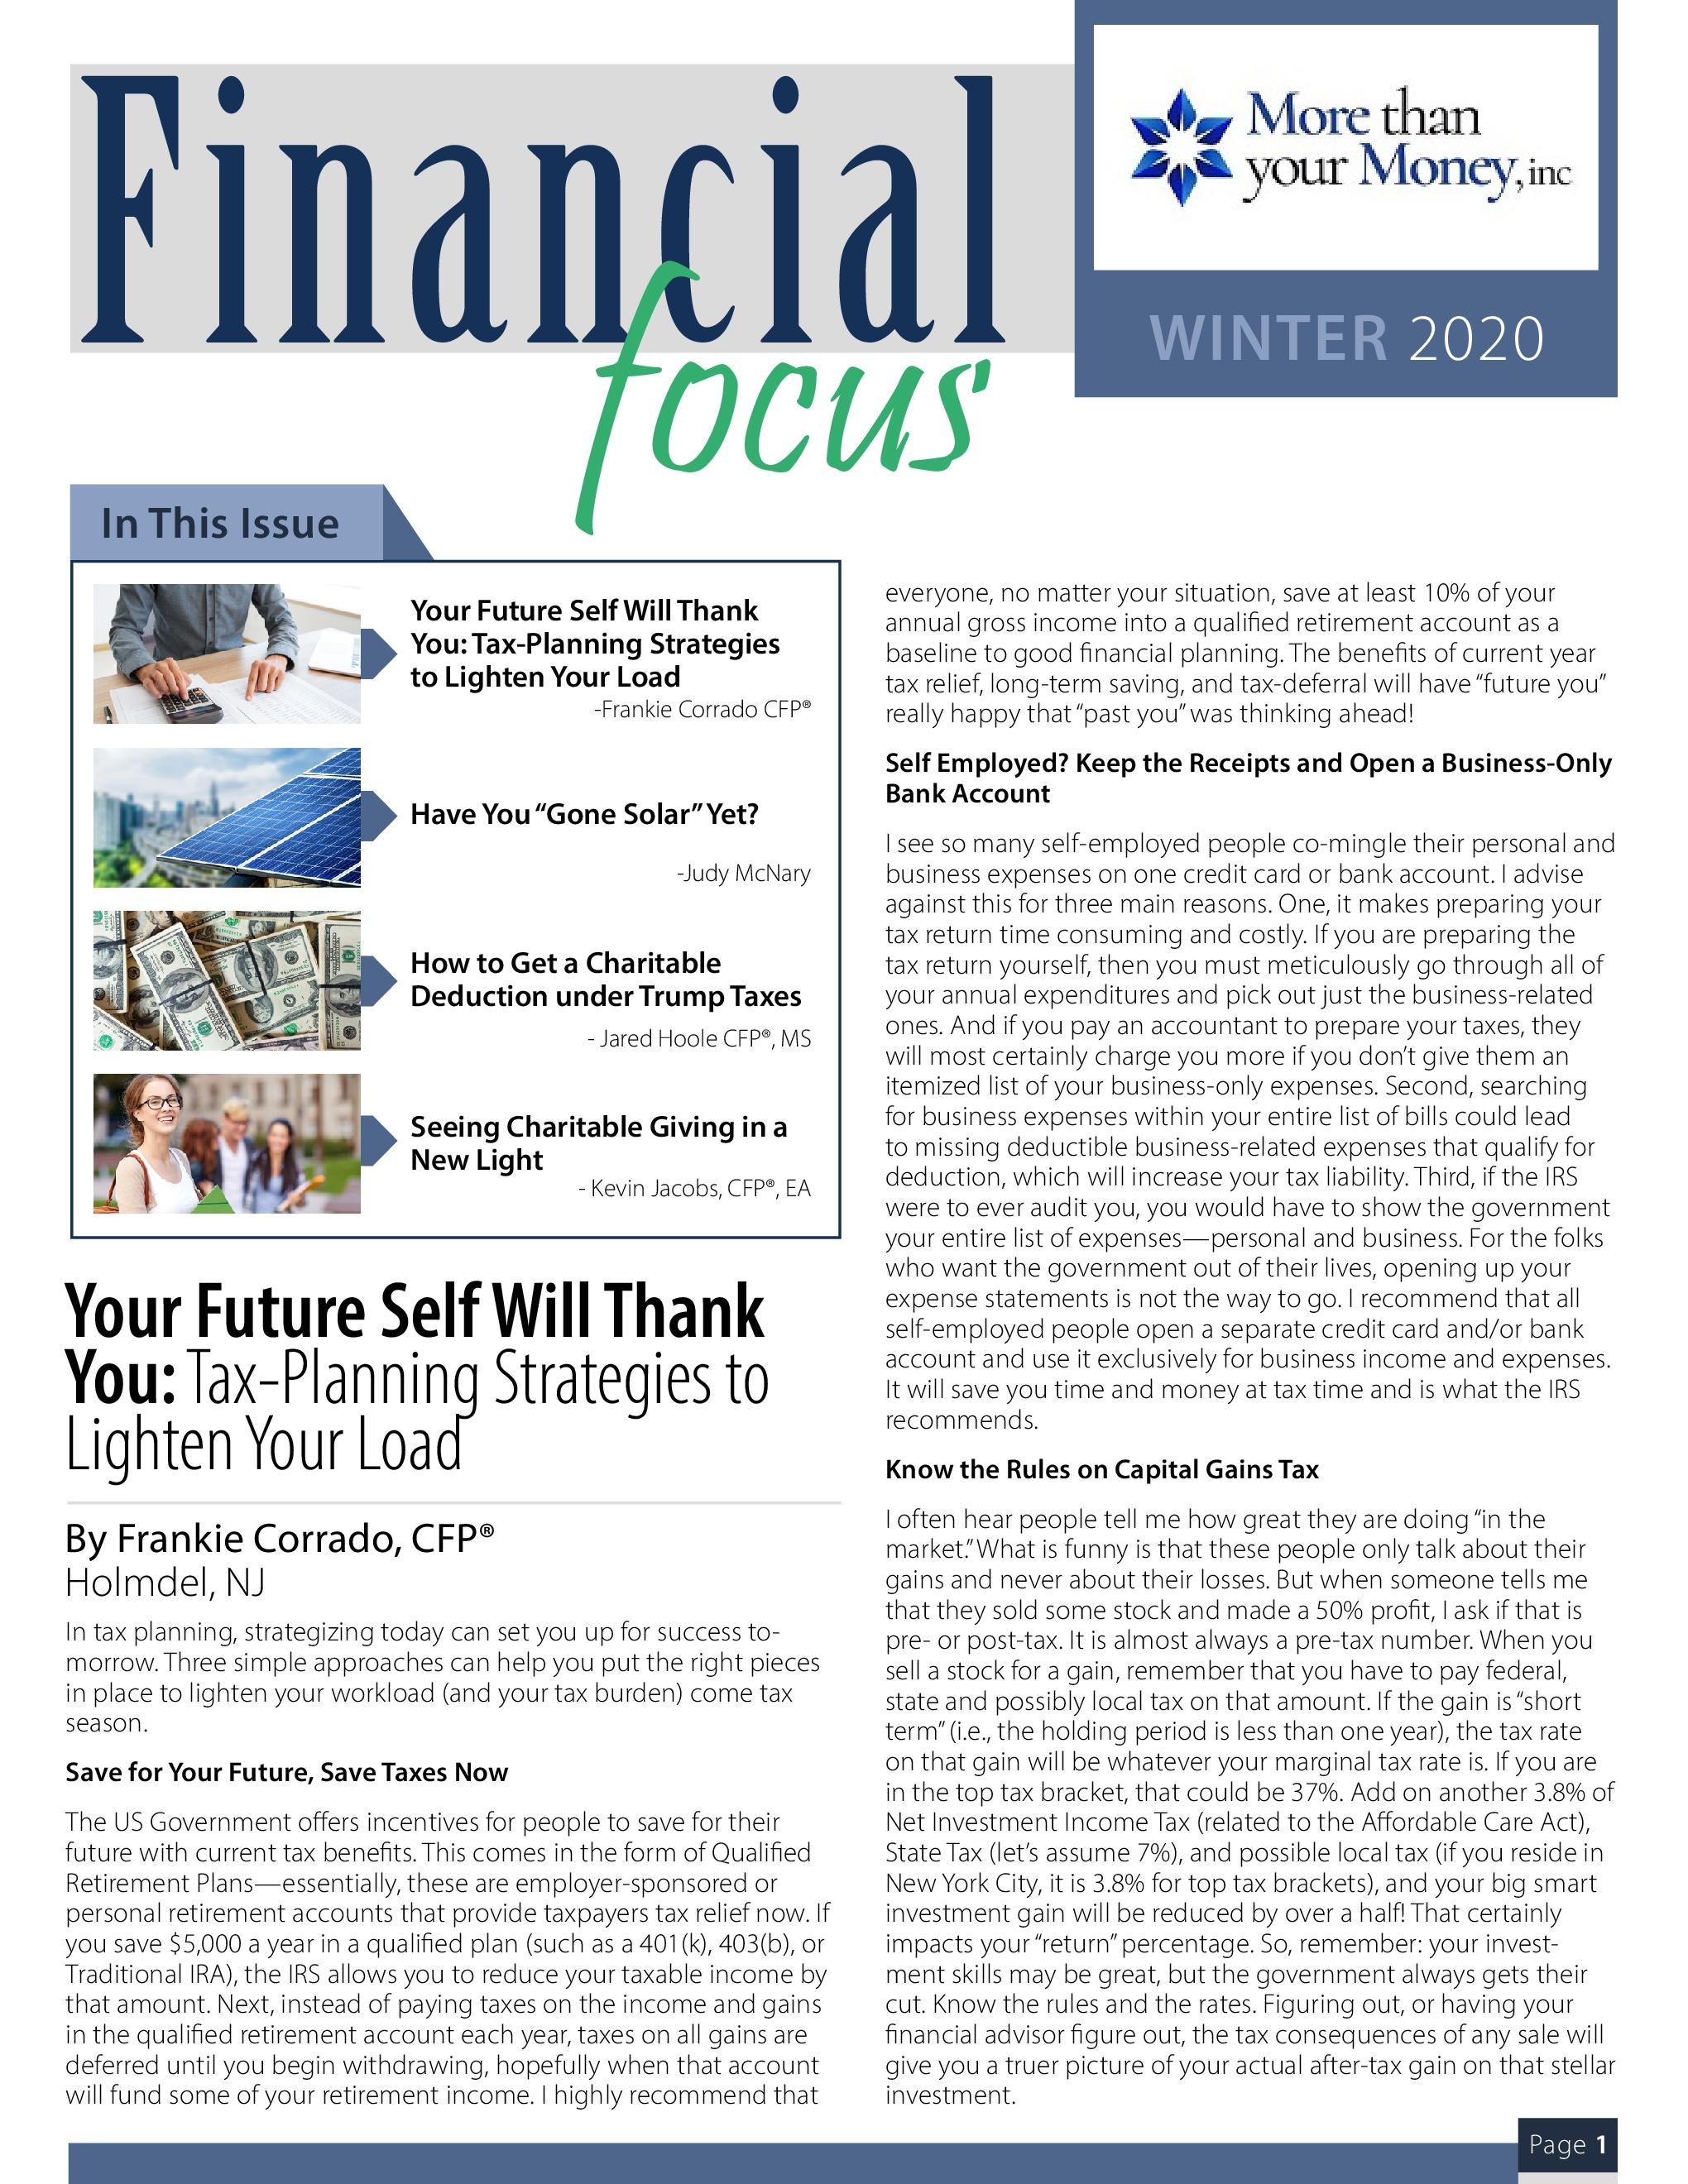 Financial Focus Winter 2020 Thumbnail